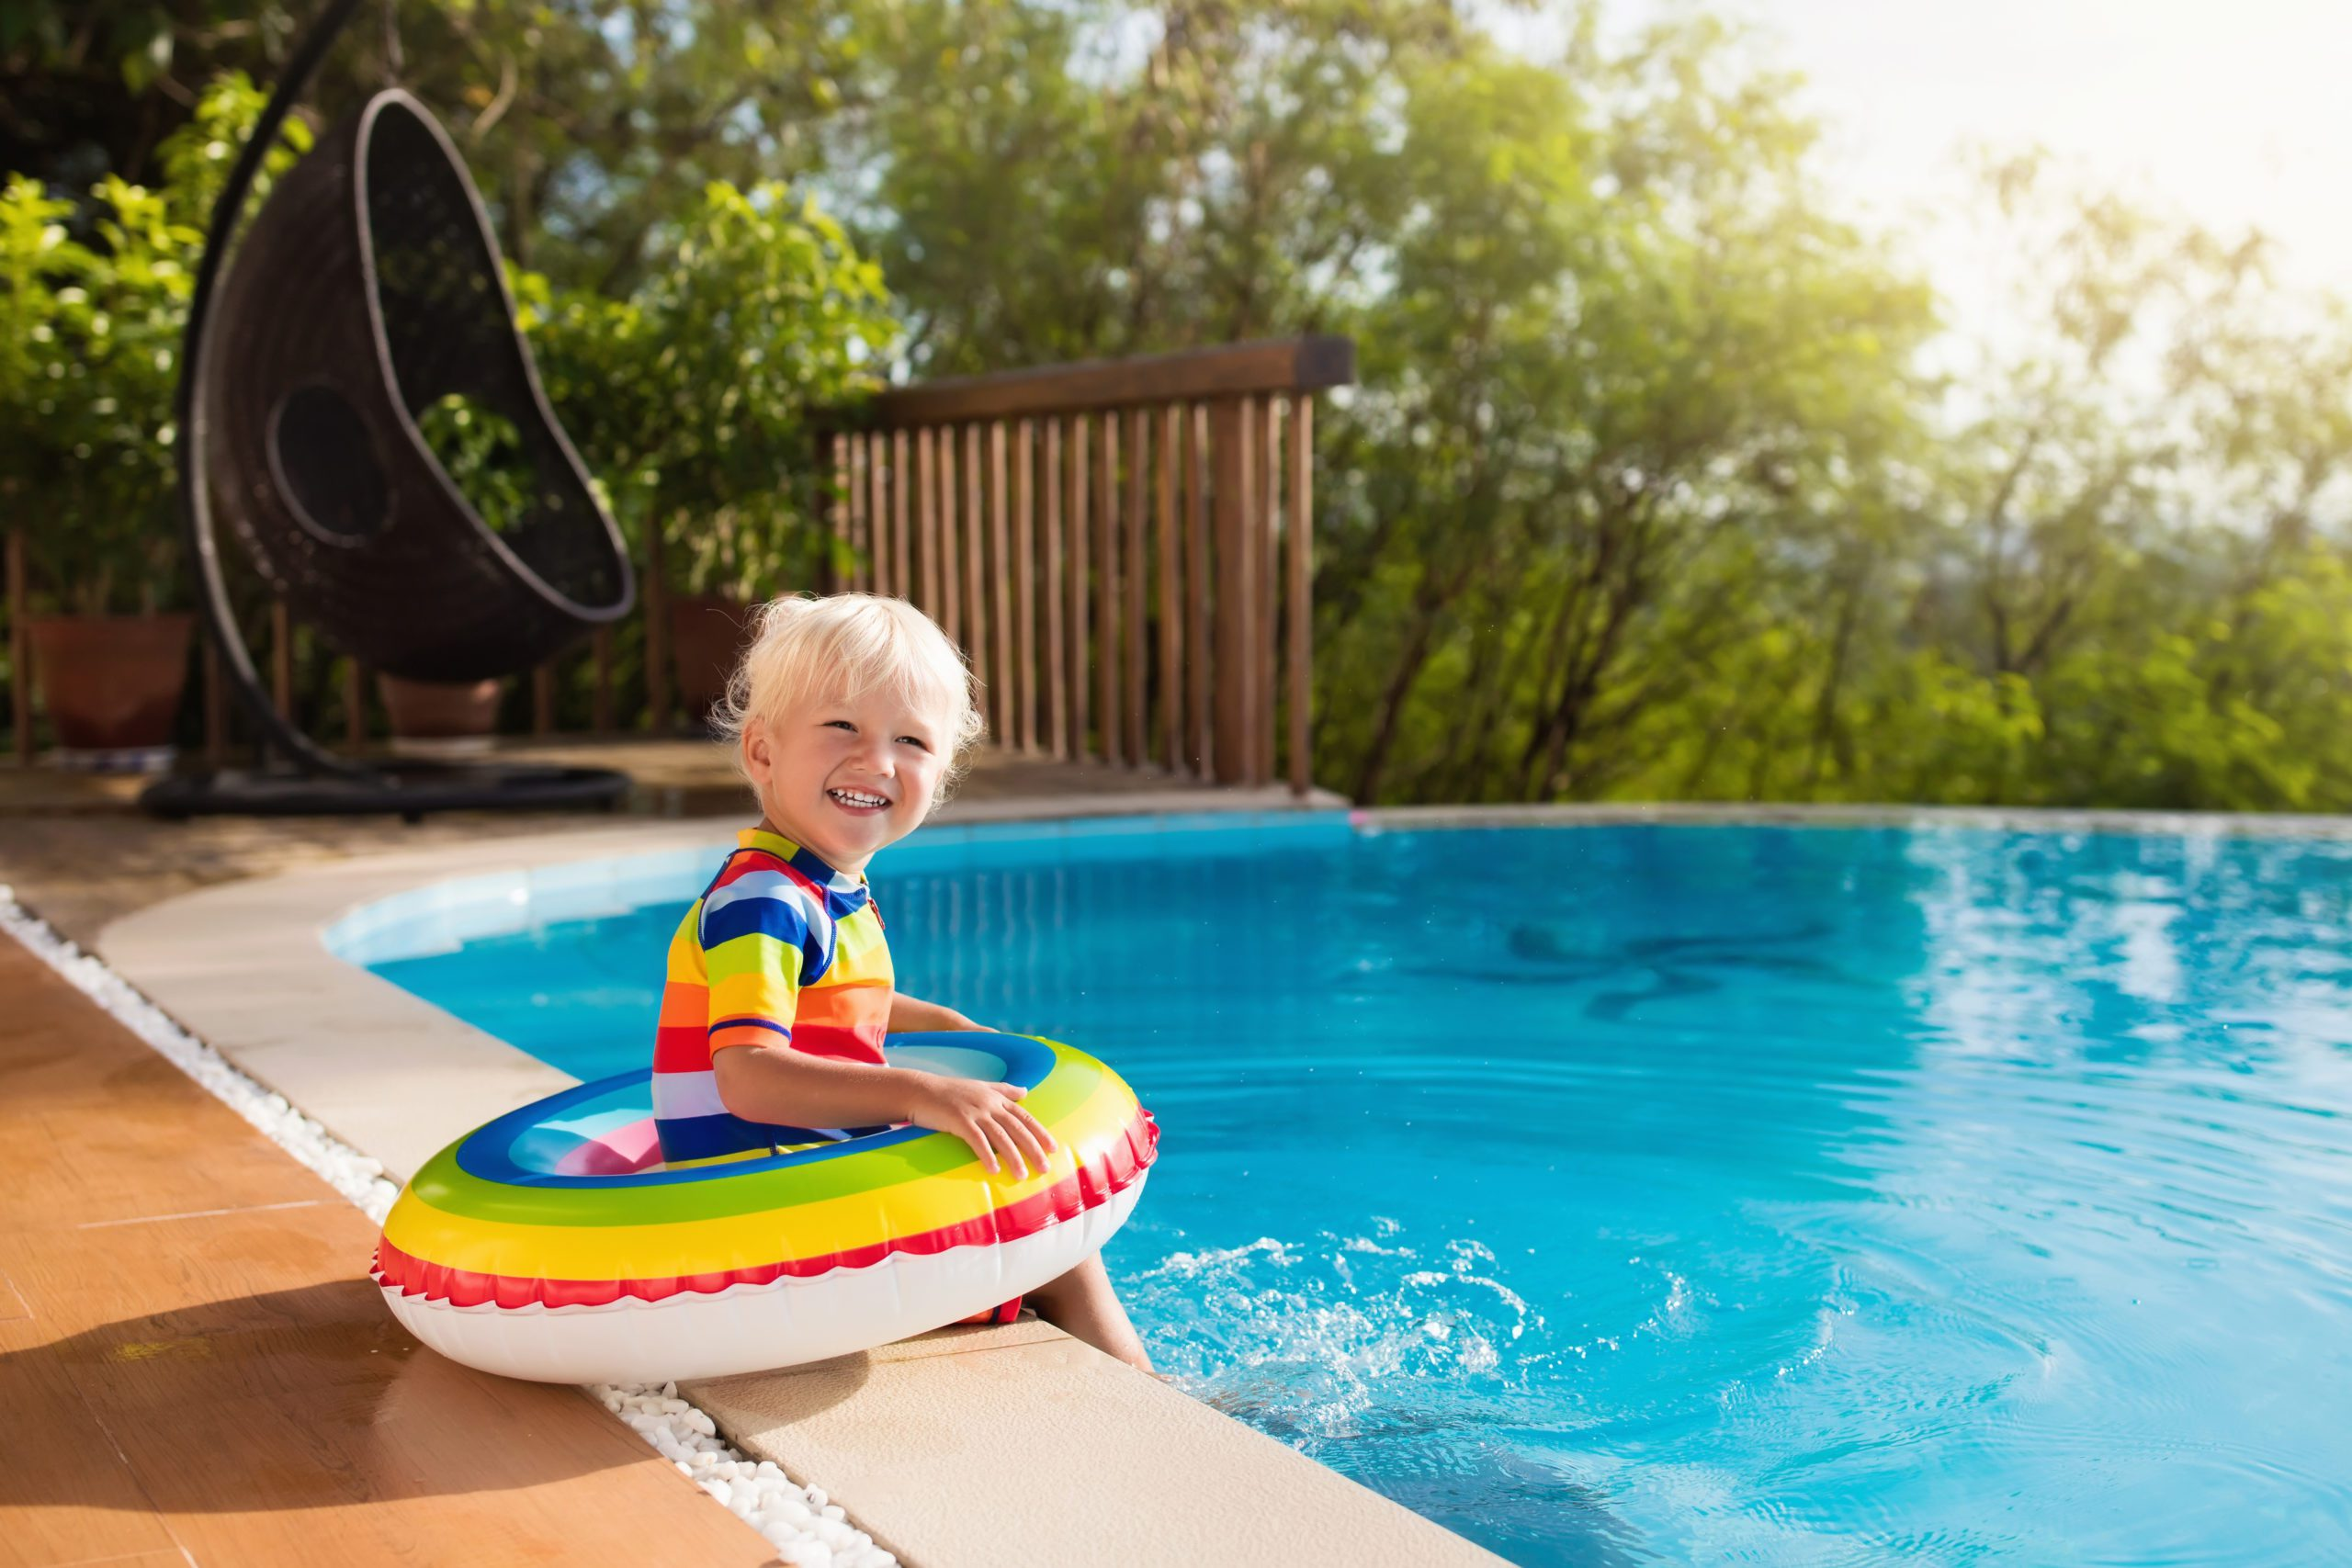 Swimming and Autism: Benefits, Risks and What Parents Should Know